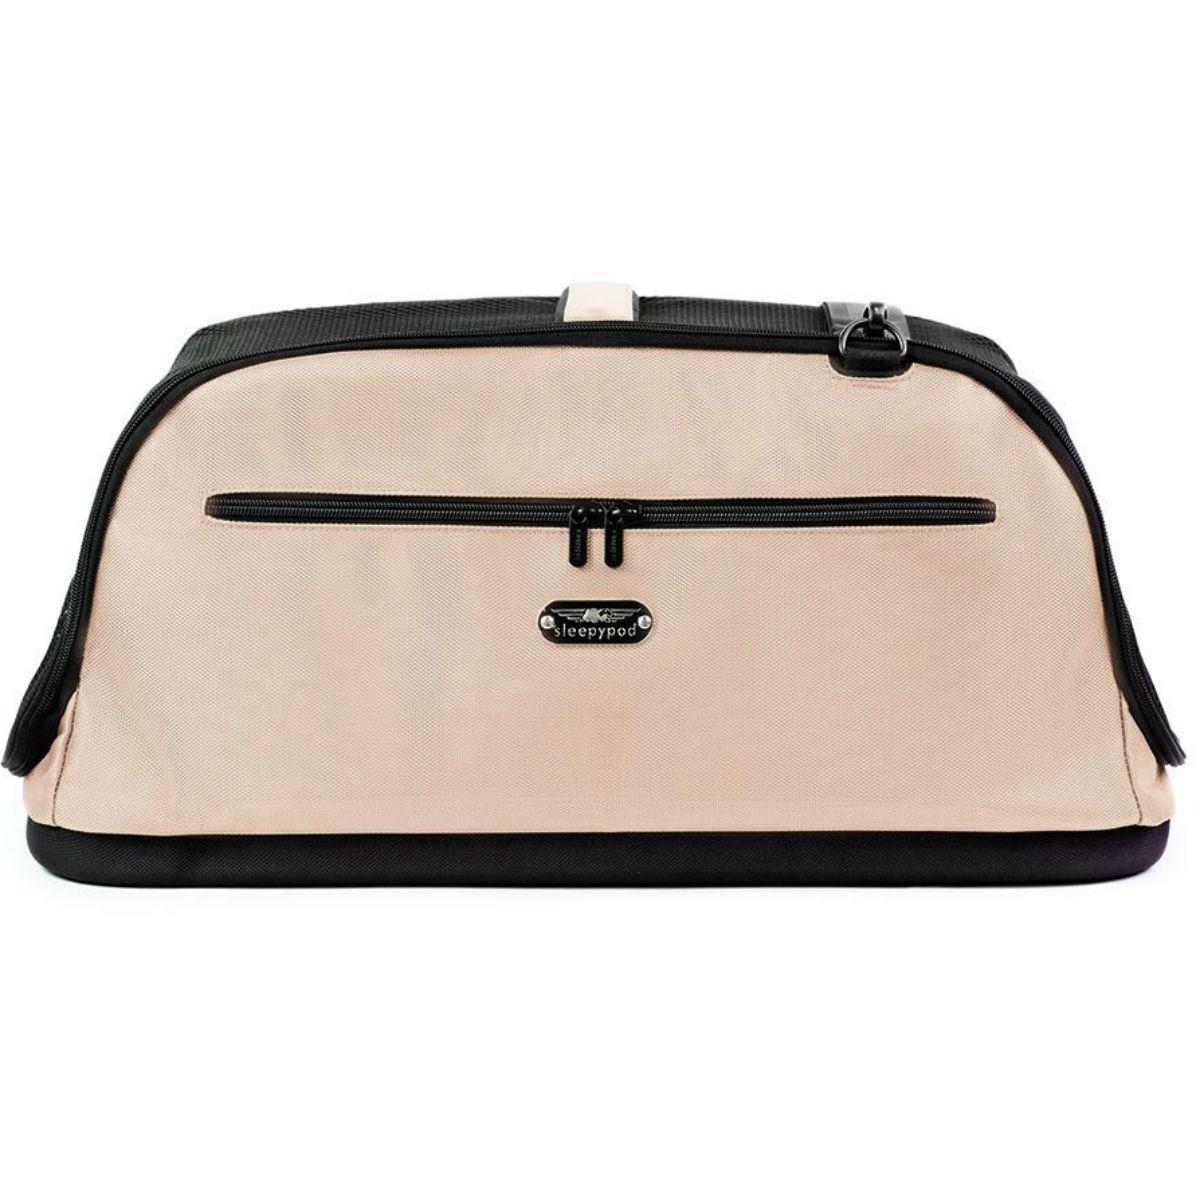 Sleepypod Air Travel Pet Carrier Bed - First Blush